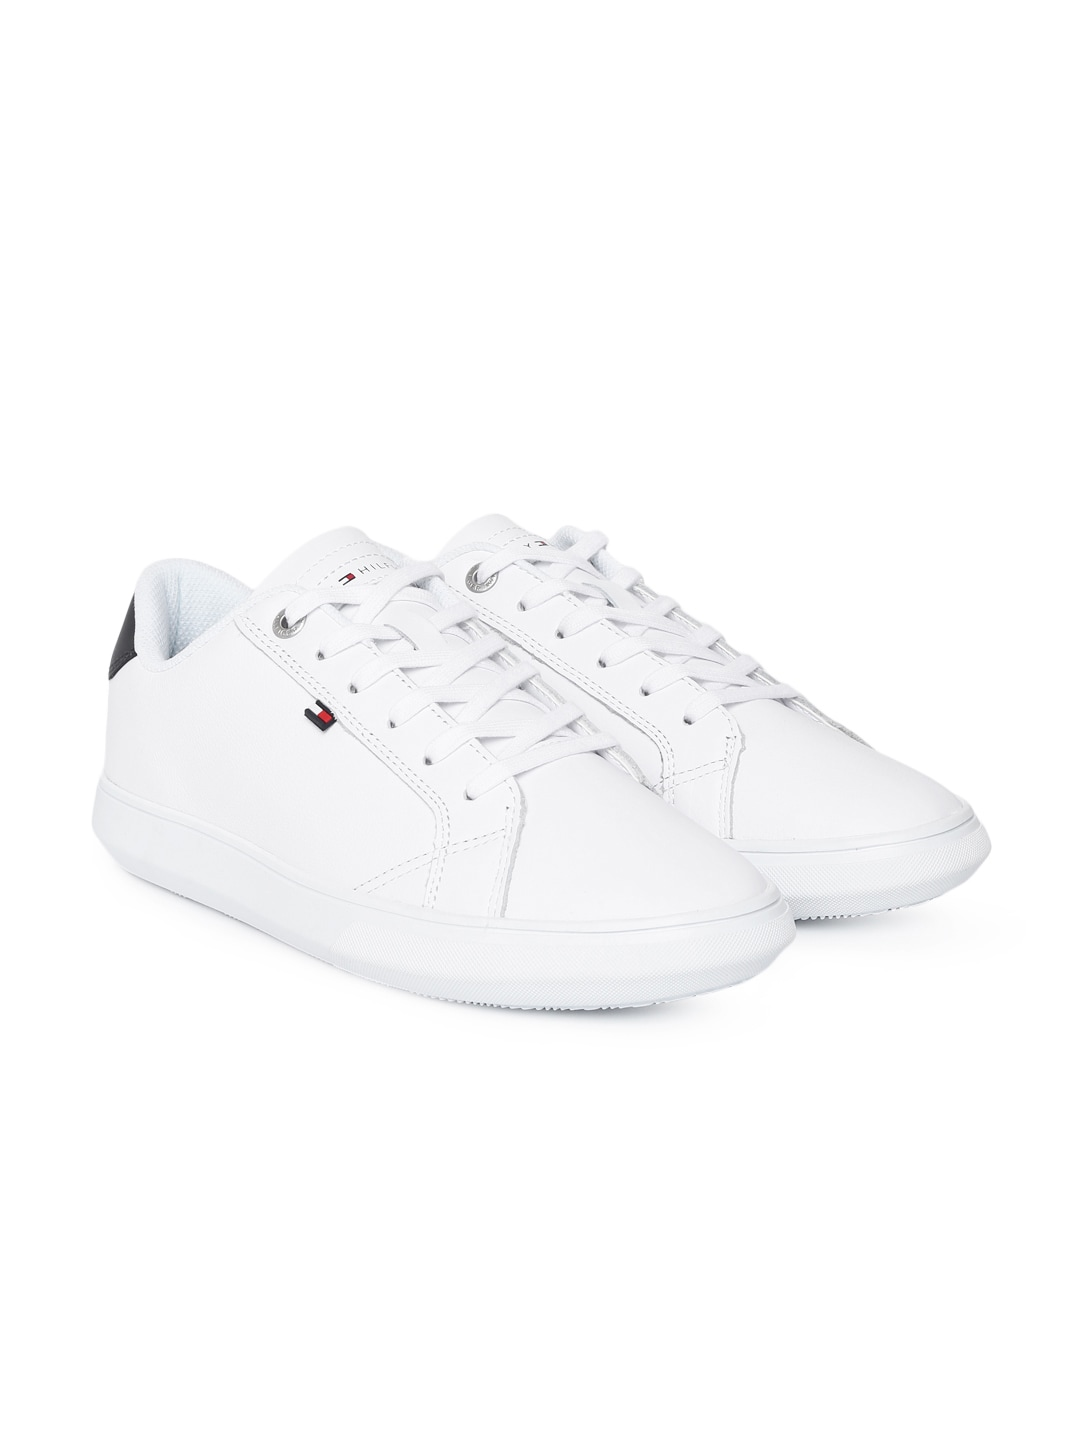 a3a304acc1c33d Tommy Hilfiger Shoes - Buy Tommy Hilfiger Shoes Online - Myntra